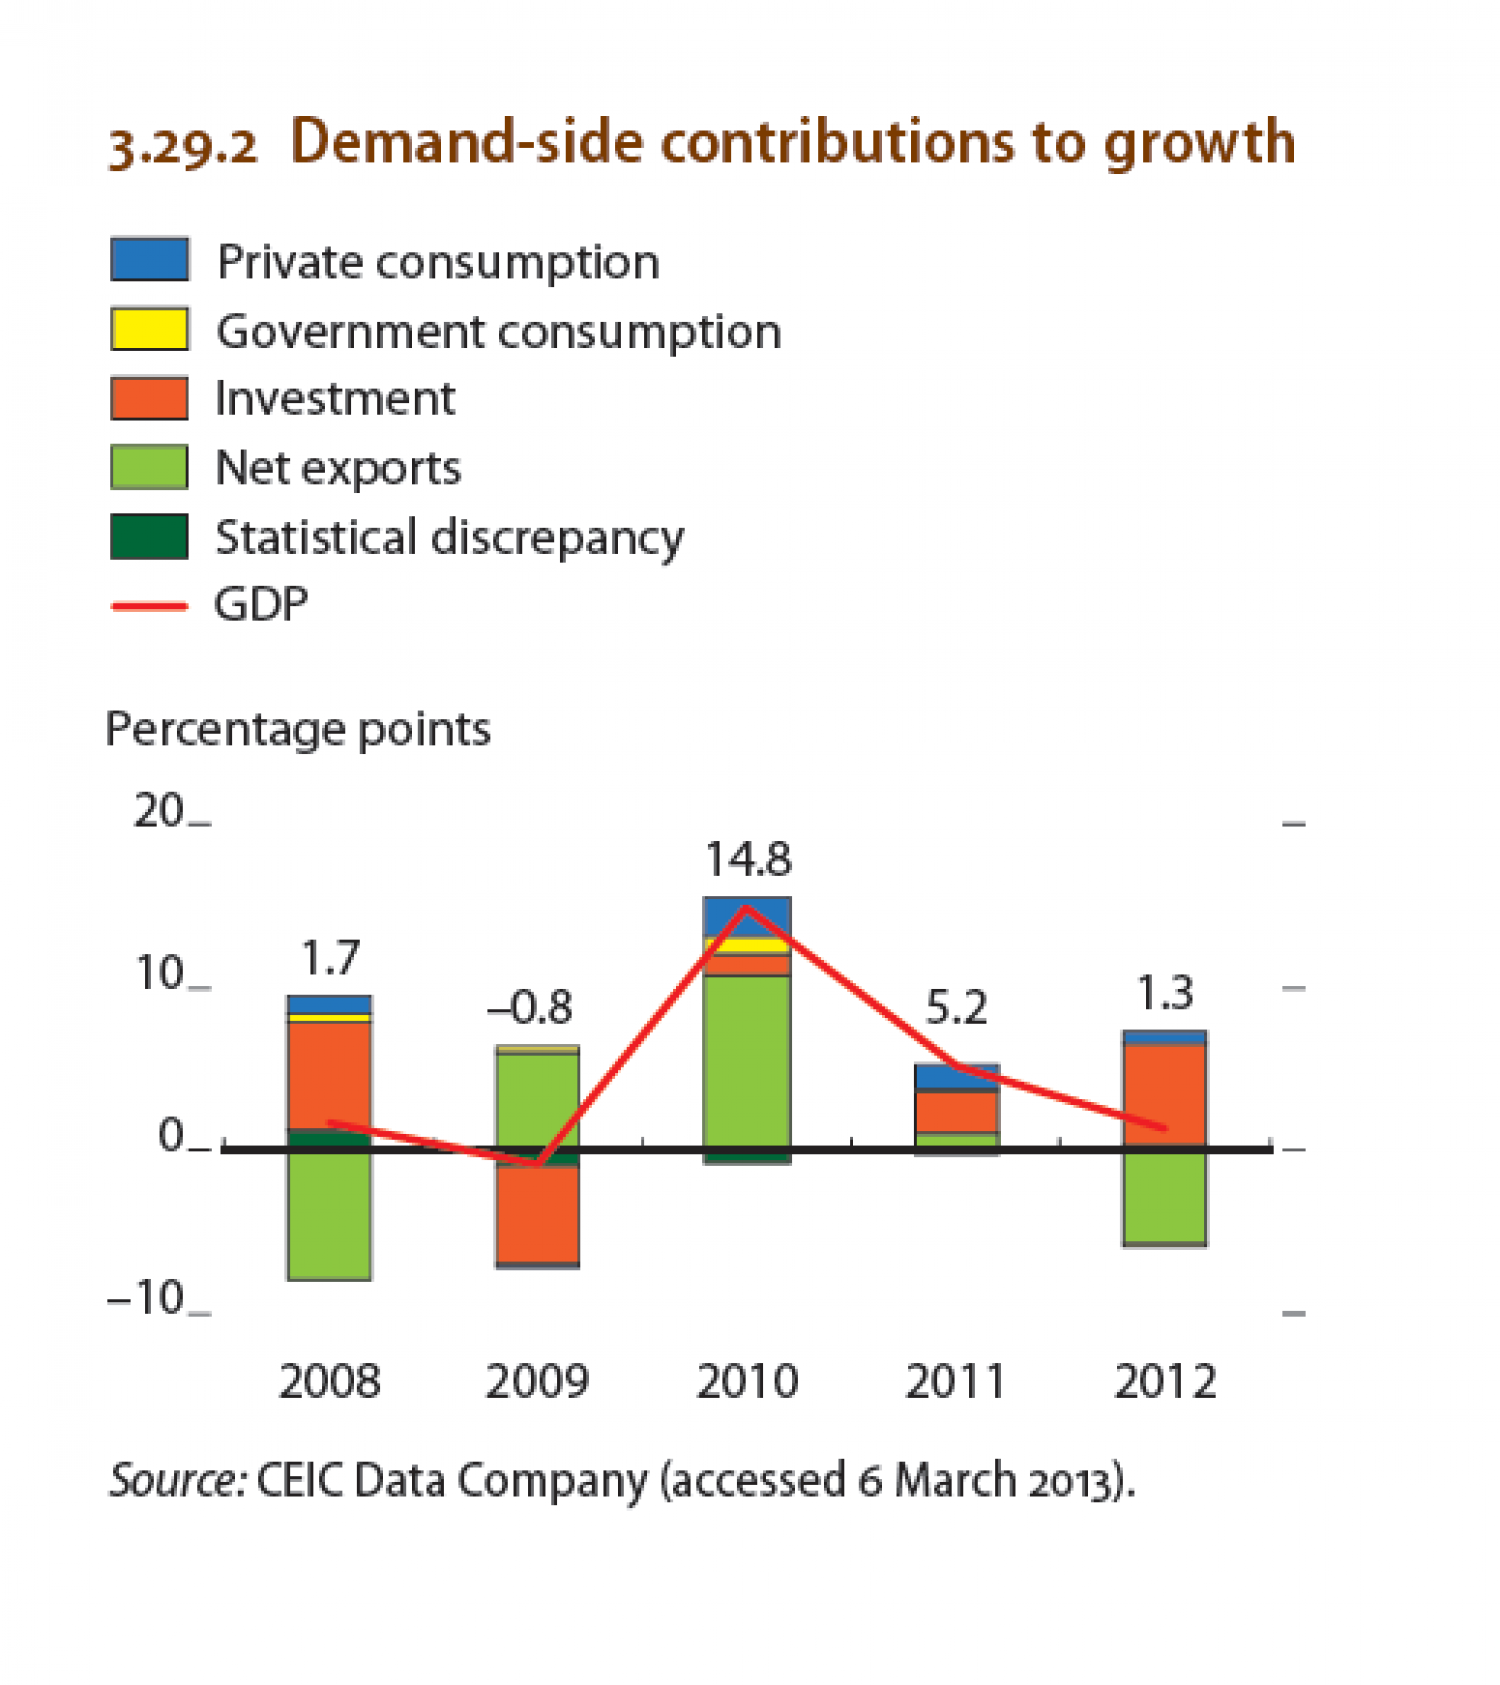 Singapore : Demand-side contributions to growth Infographic